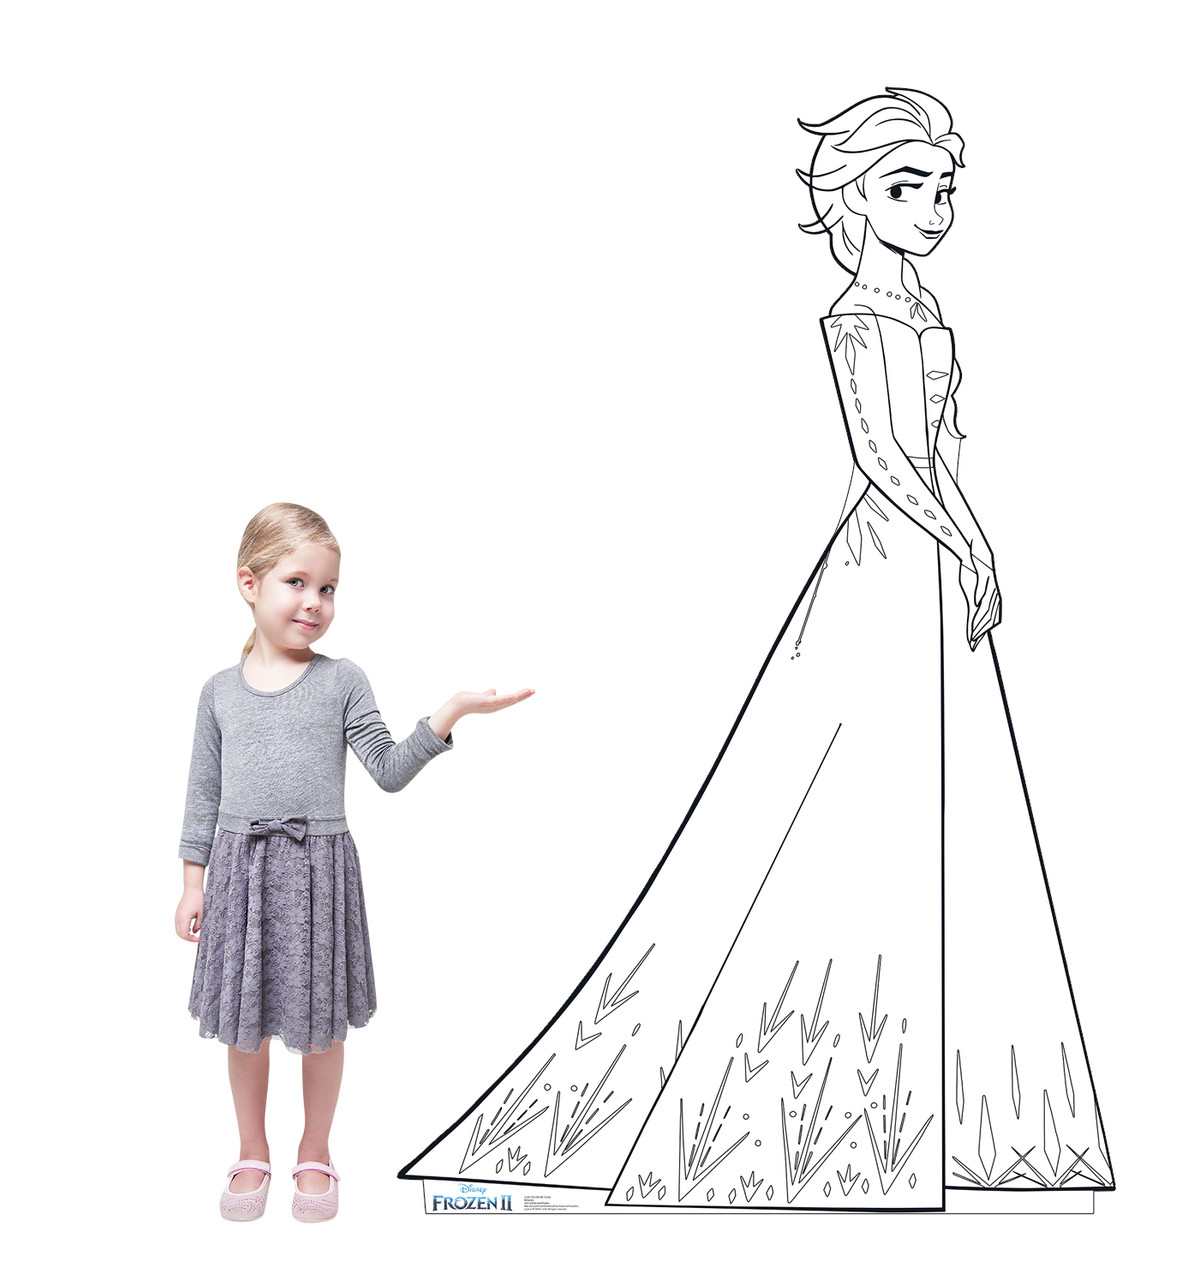 Life-size Color Me Elsa Standee with model.